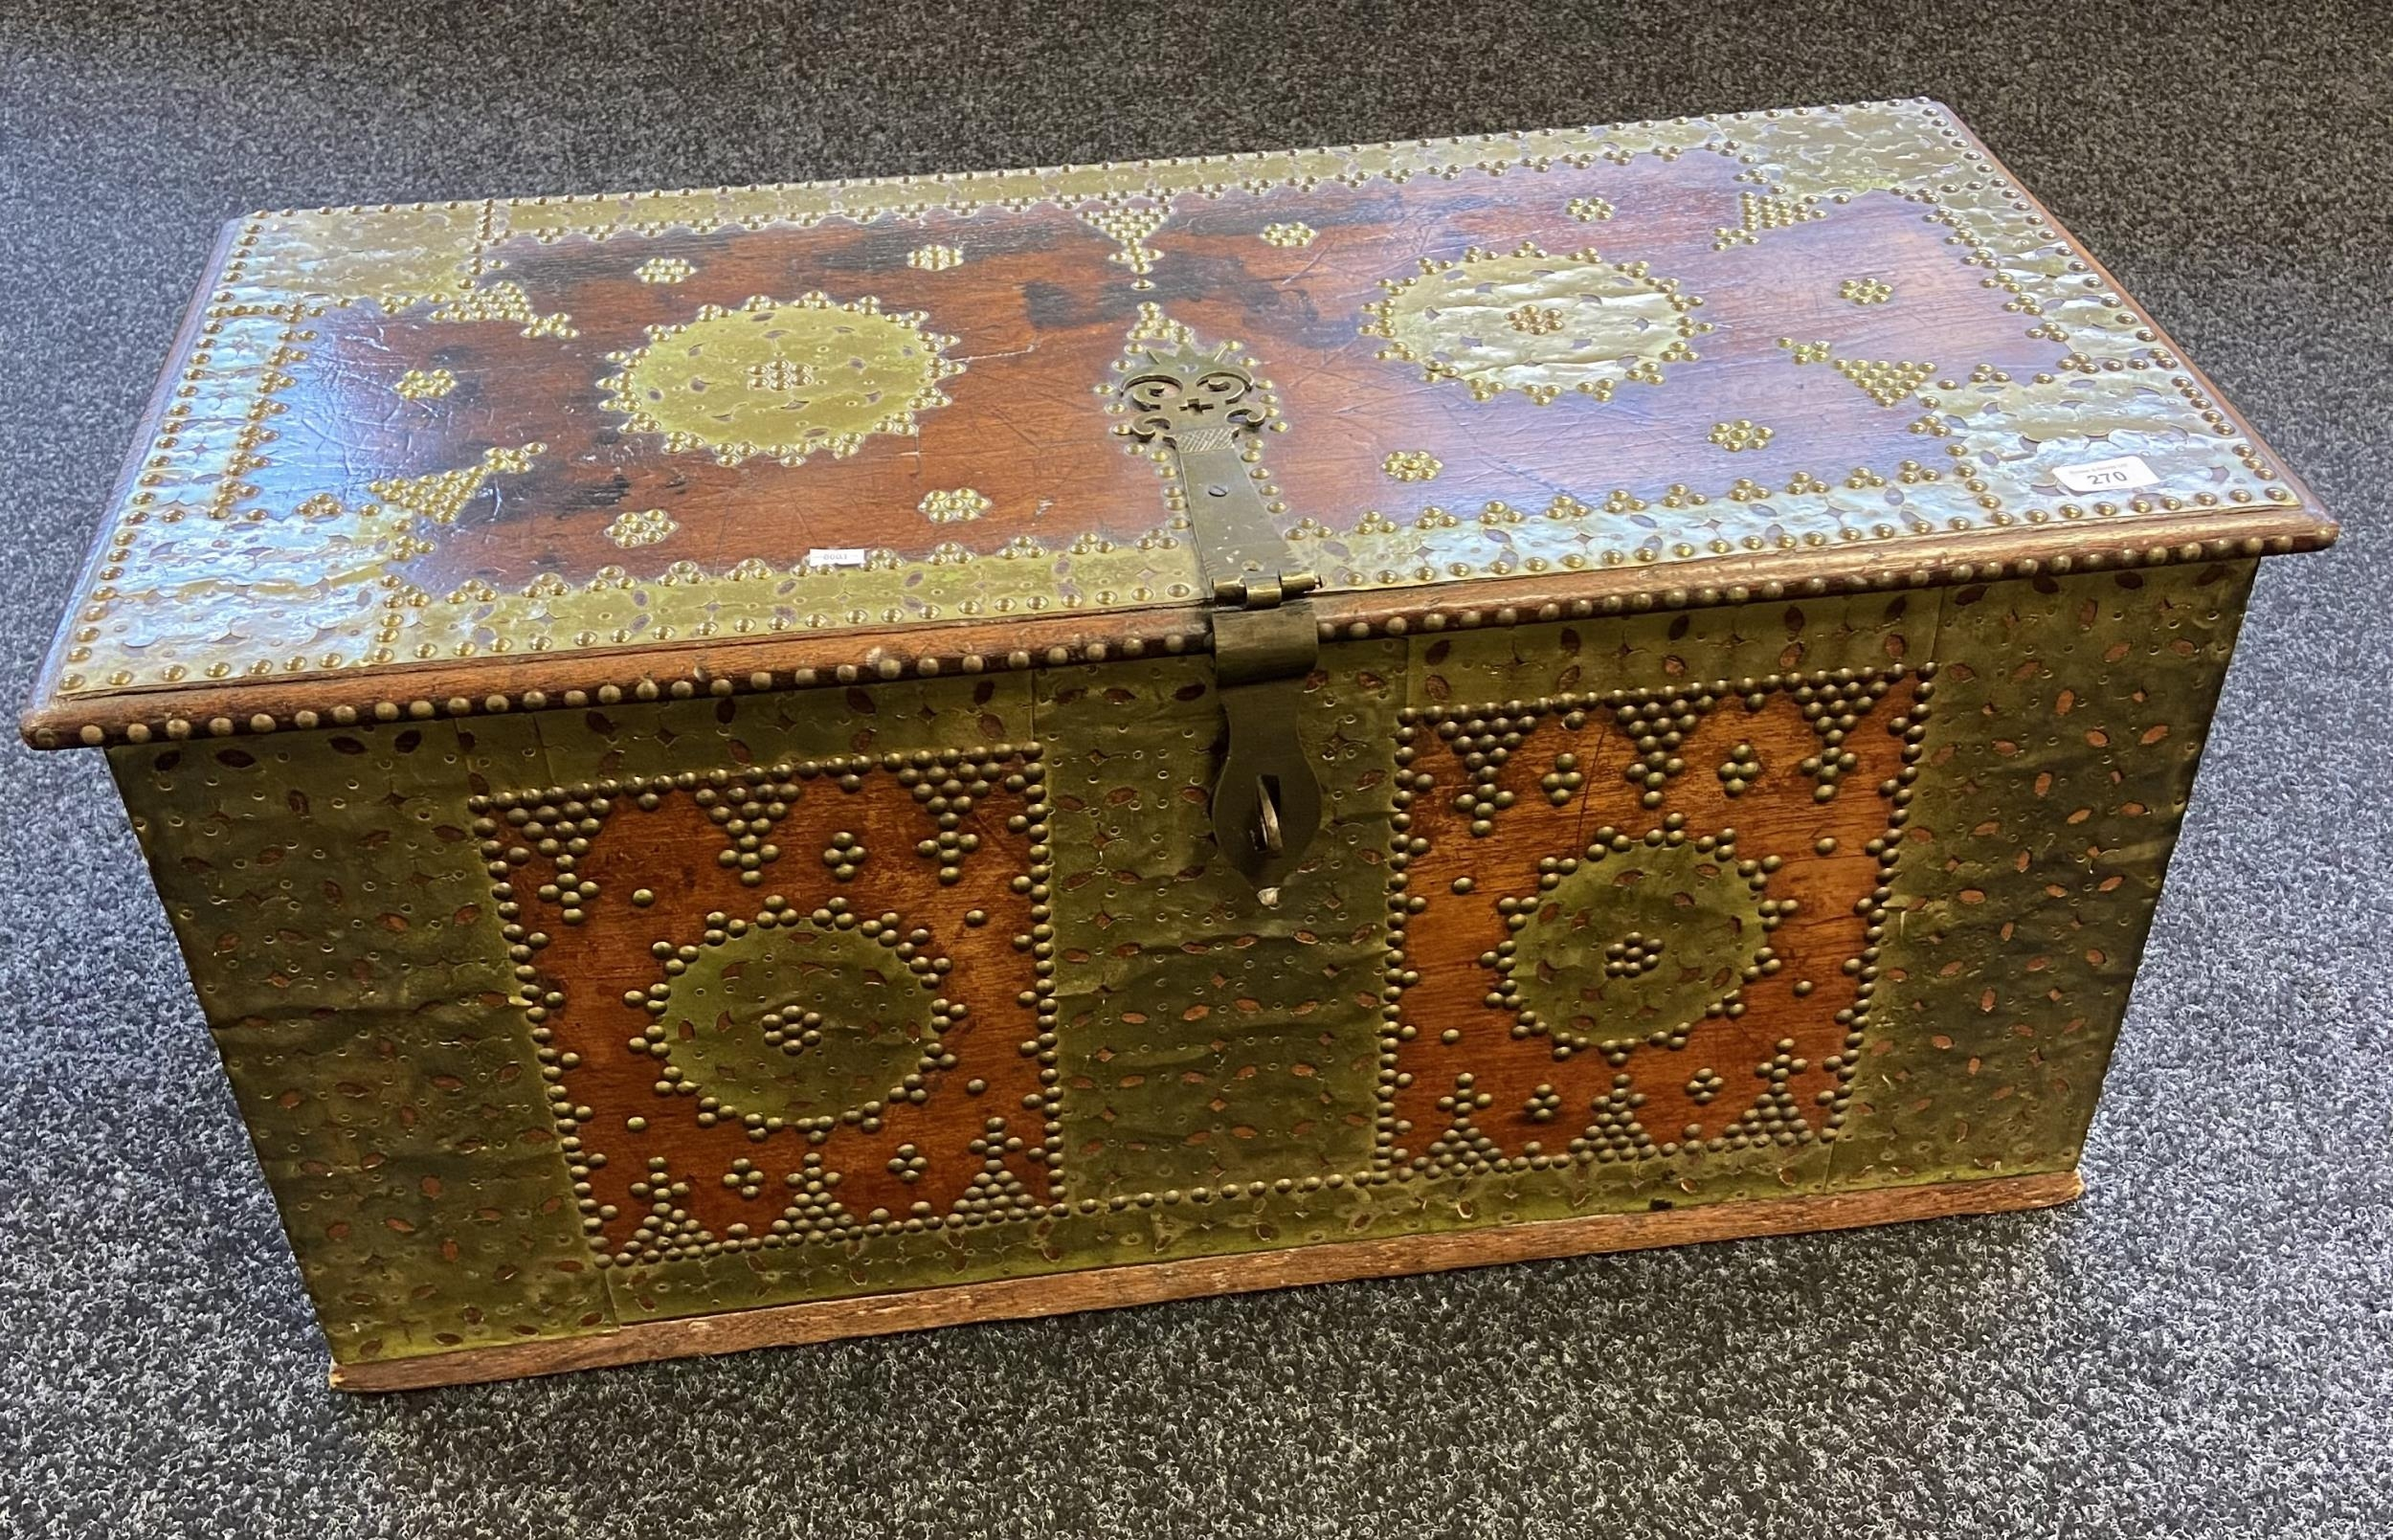 An 18th/ 19th century Arabic travel chest, Designed with brass mounts and heavy brass lock and